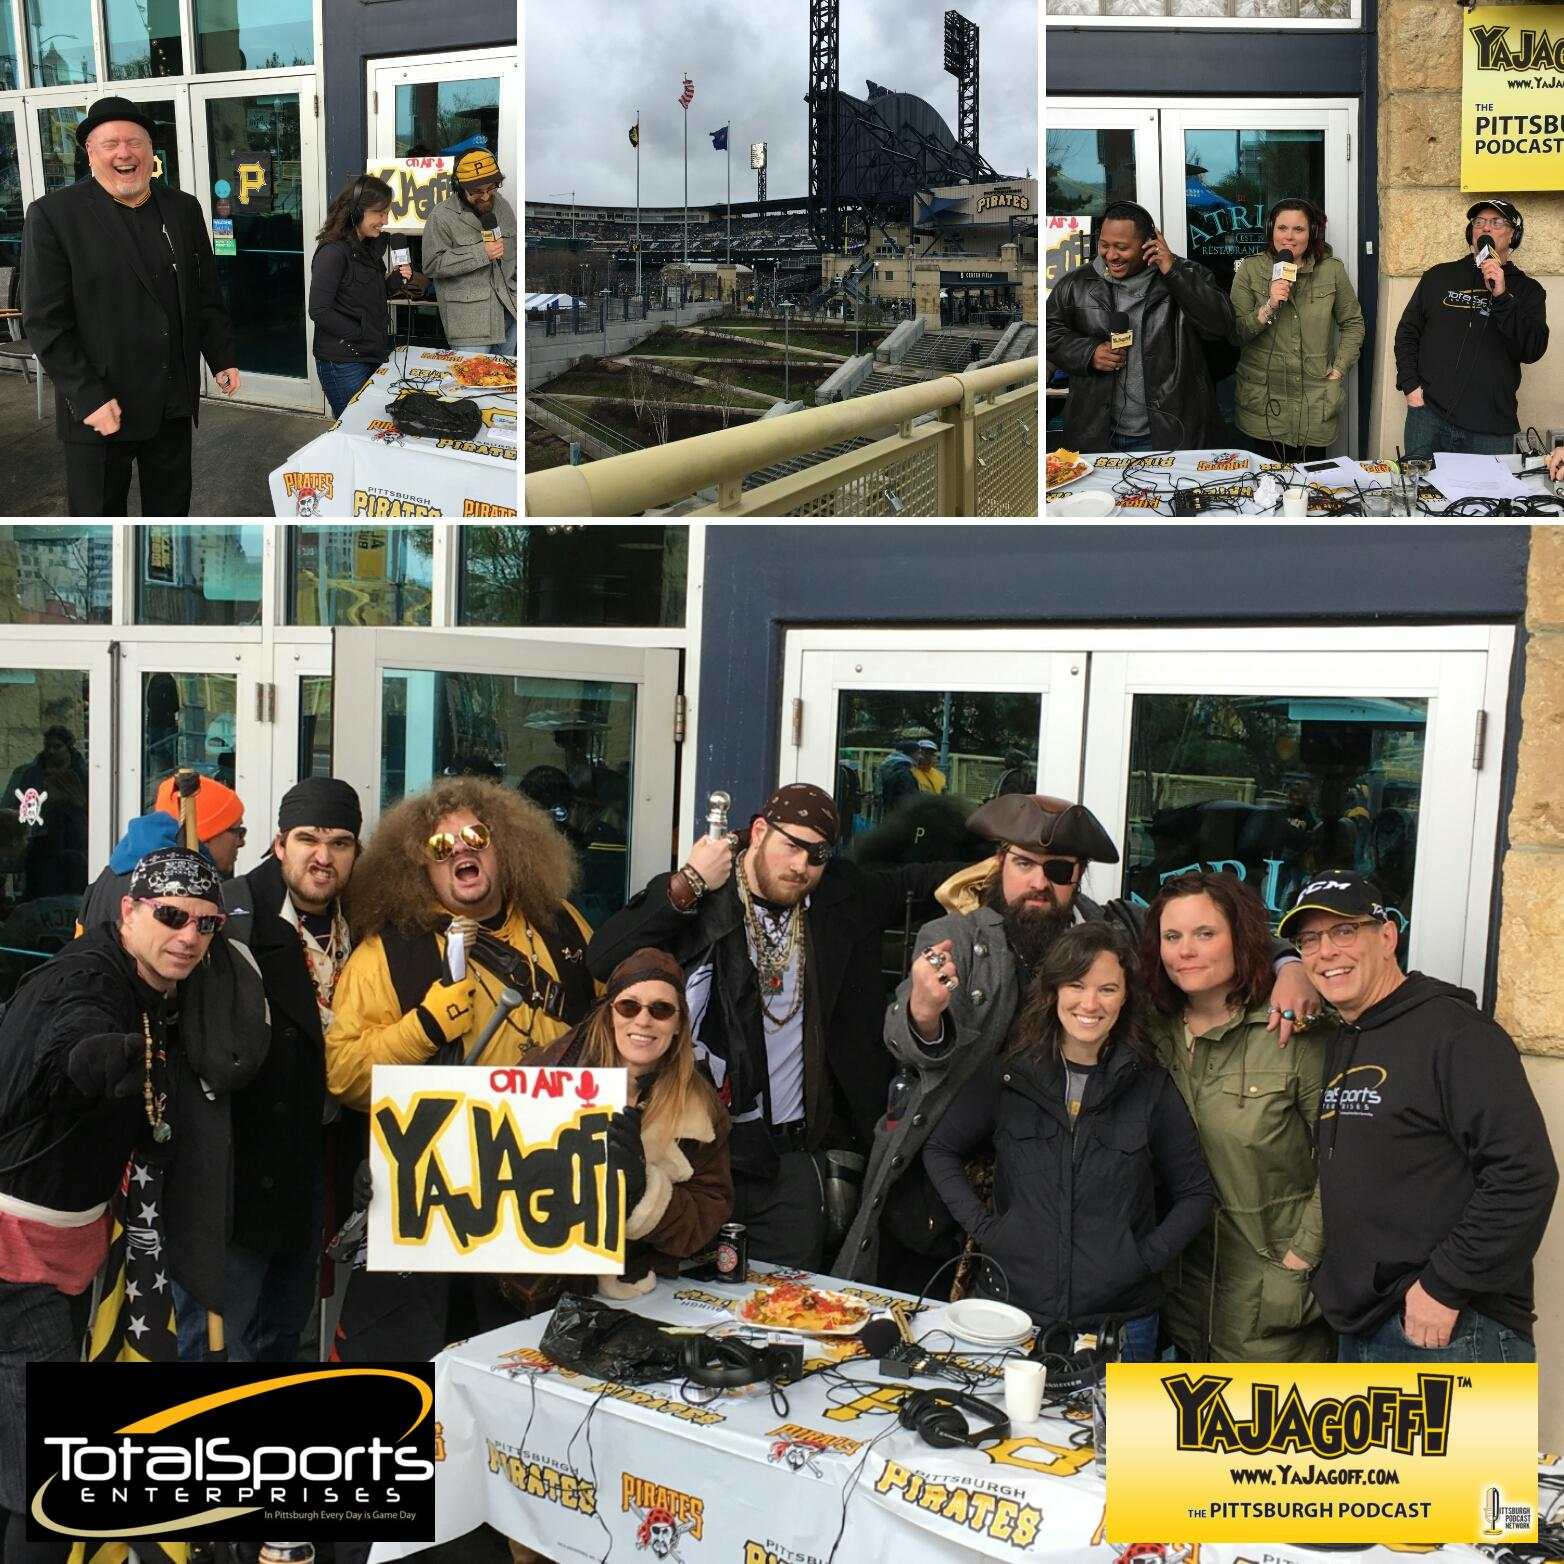 YaJagoff Podcast, Episode 65, Pirates' Home Opener from Atria's, PNC Park